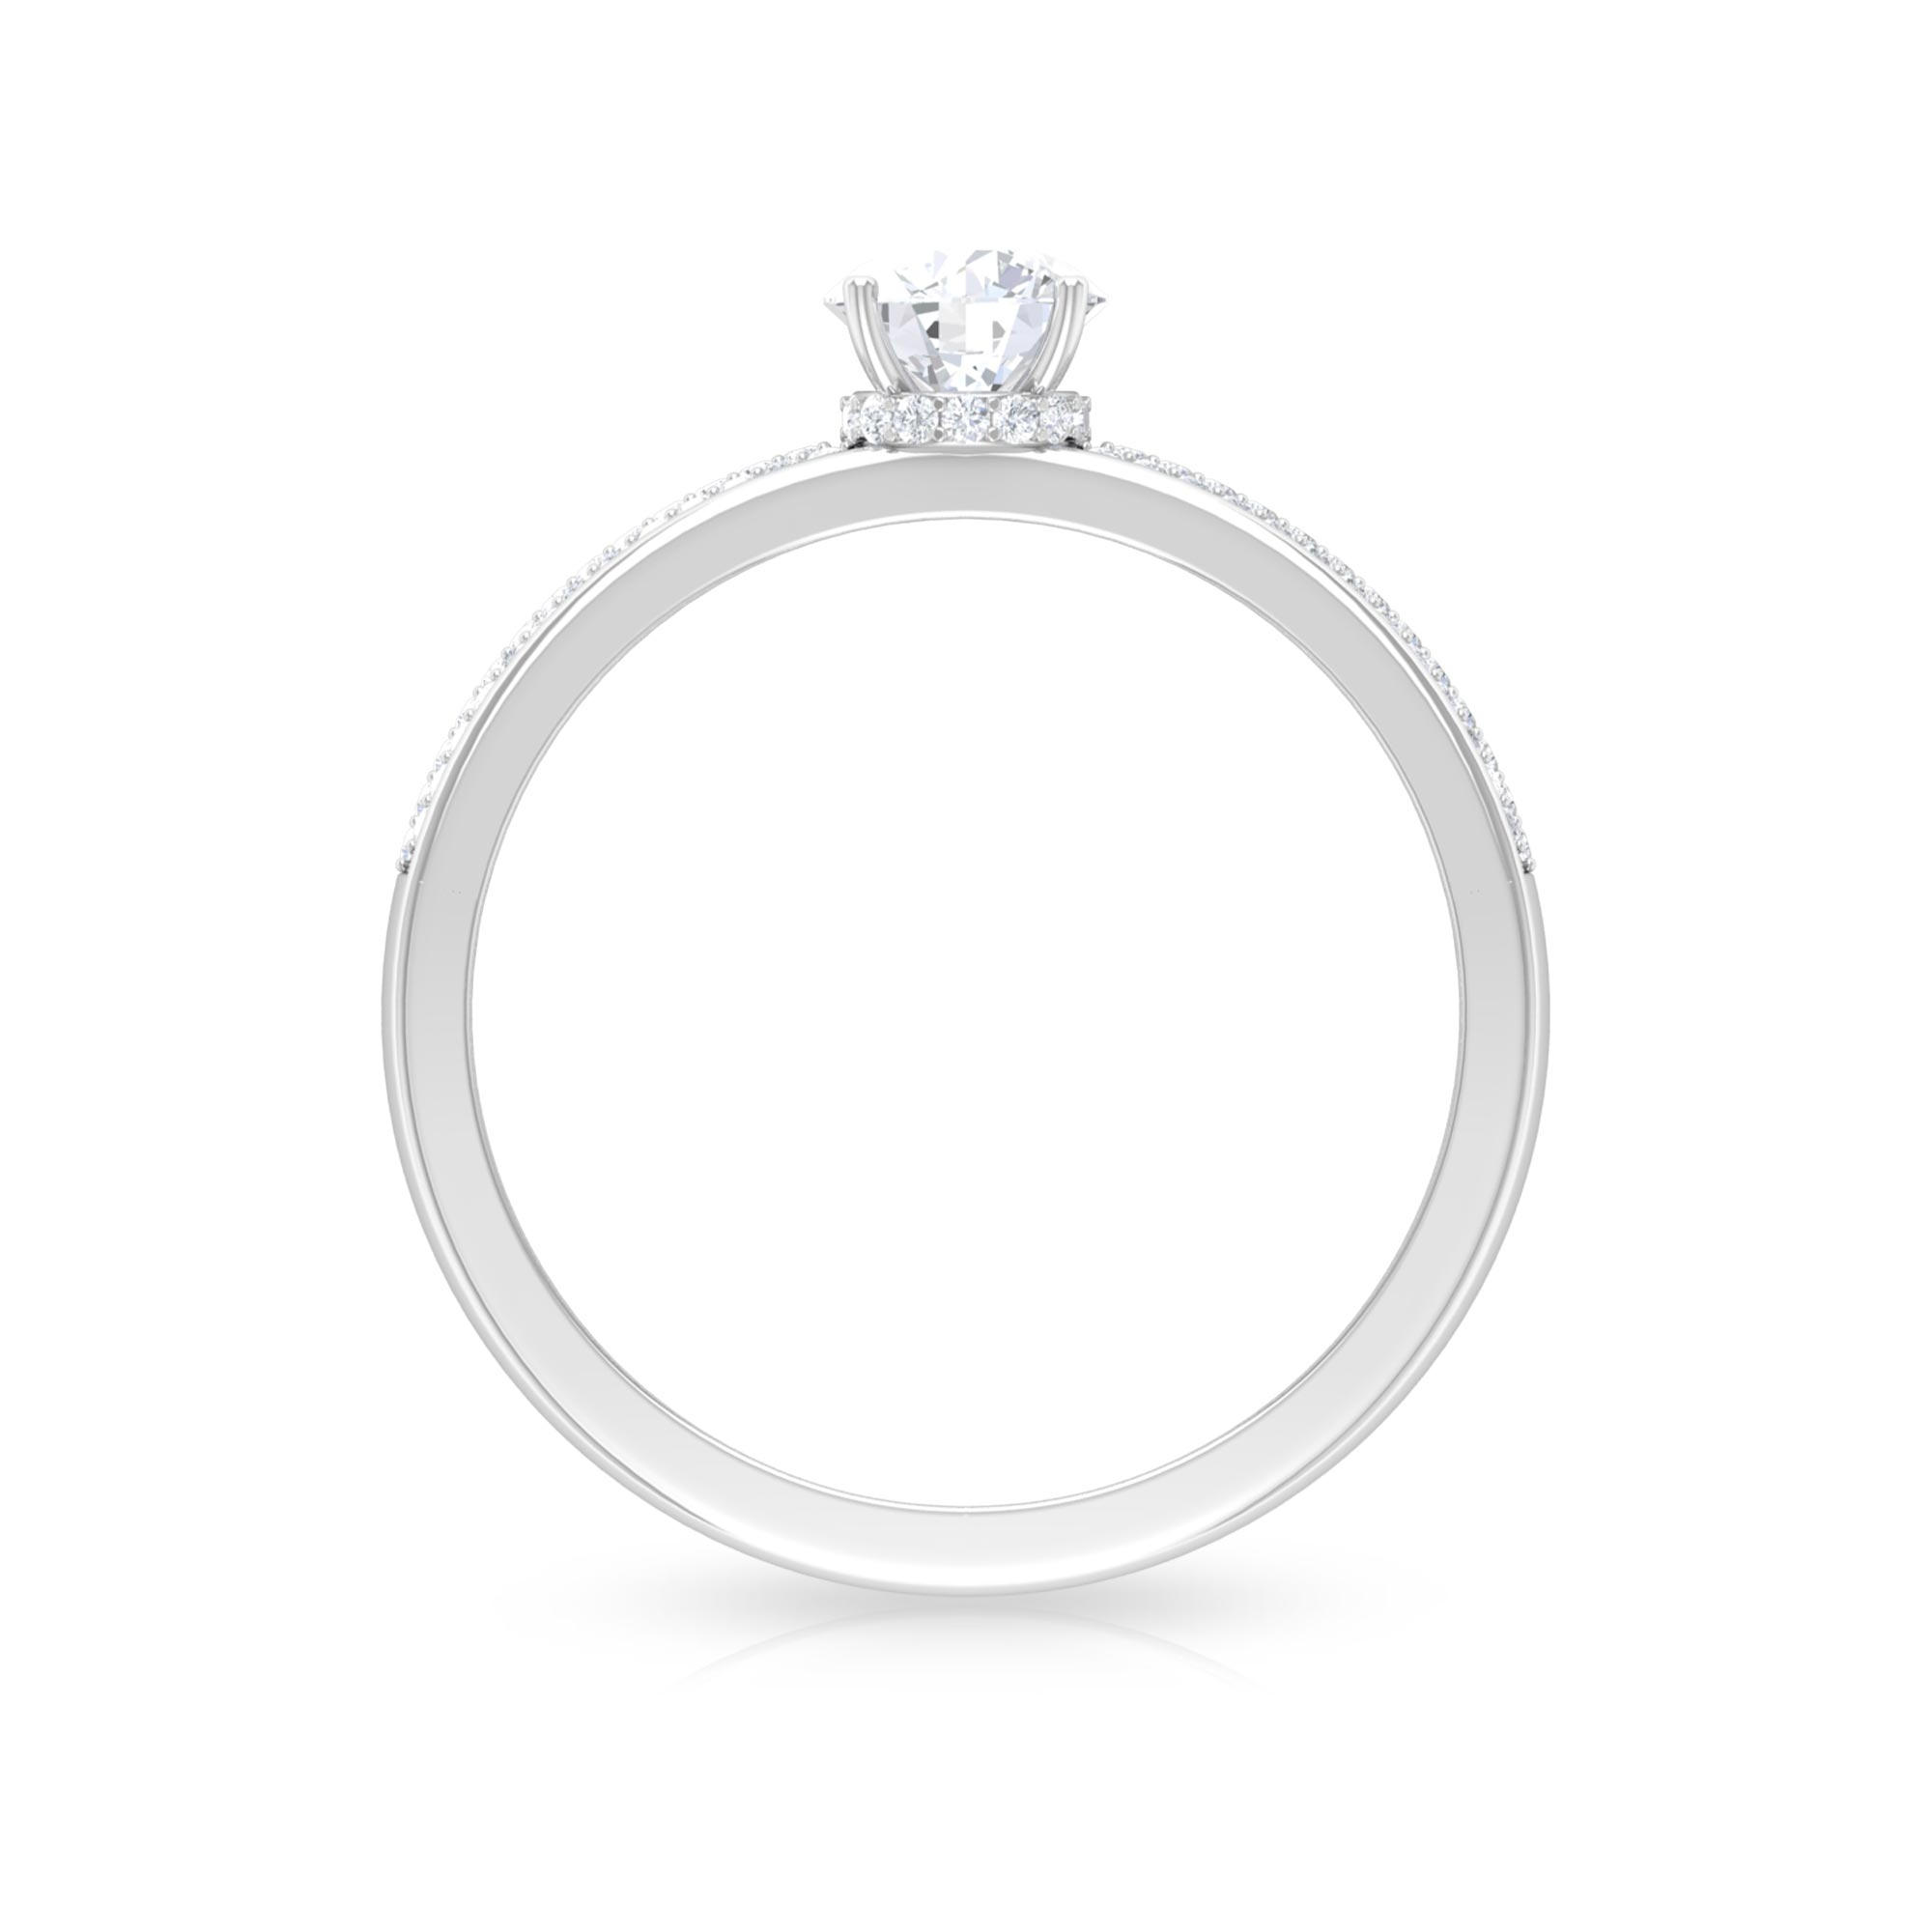 3/4 CT Four Prong Set Solitaire Diamond Ring with Hidden Halo and Pave Set Side Stones